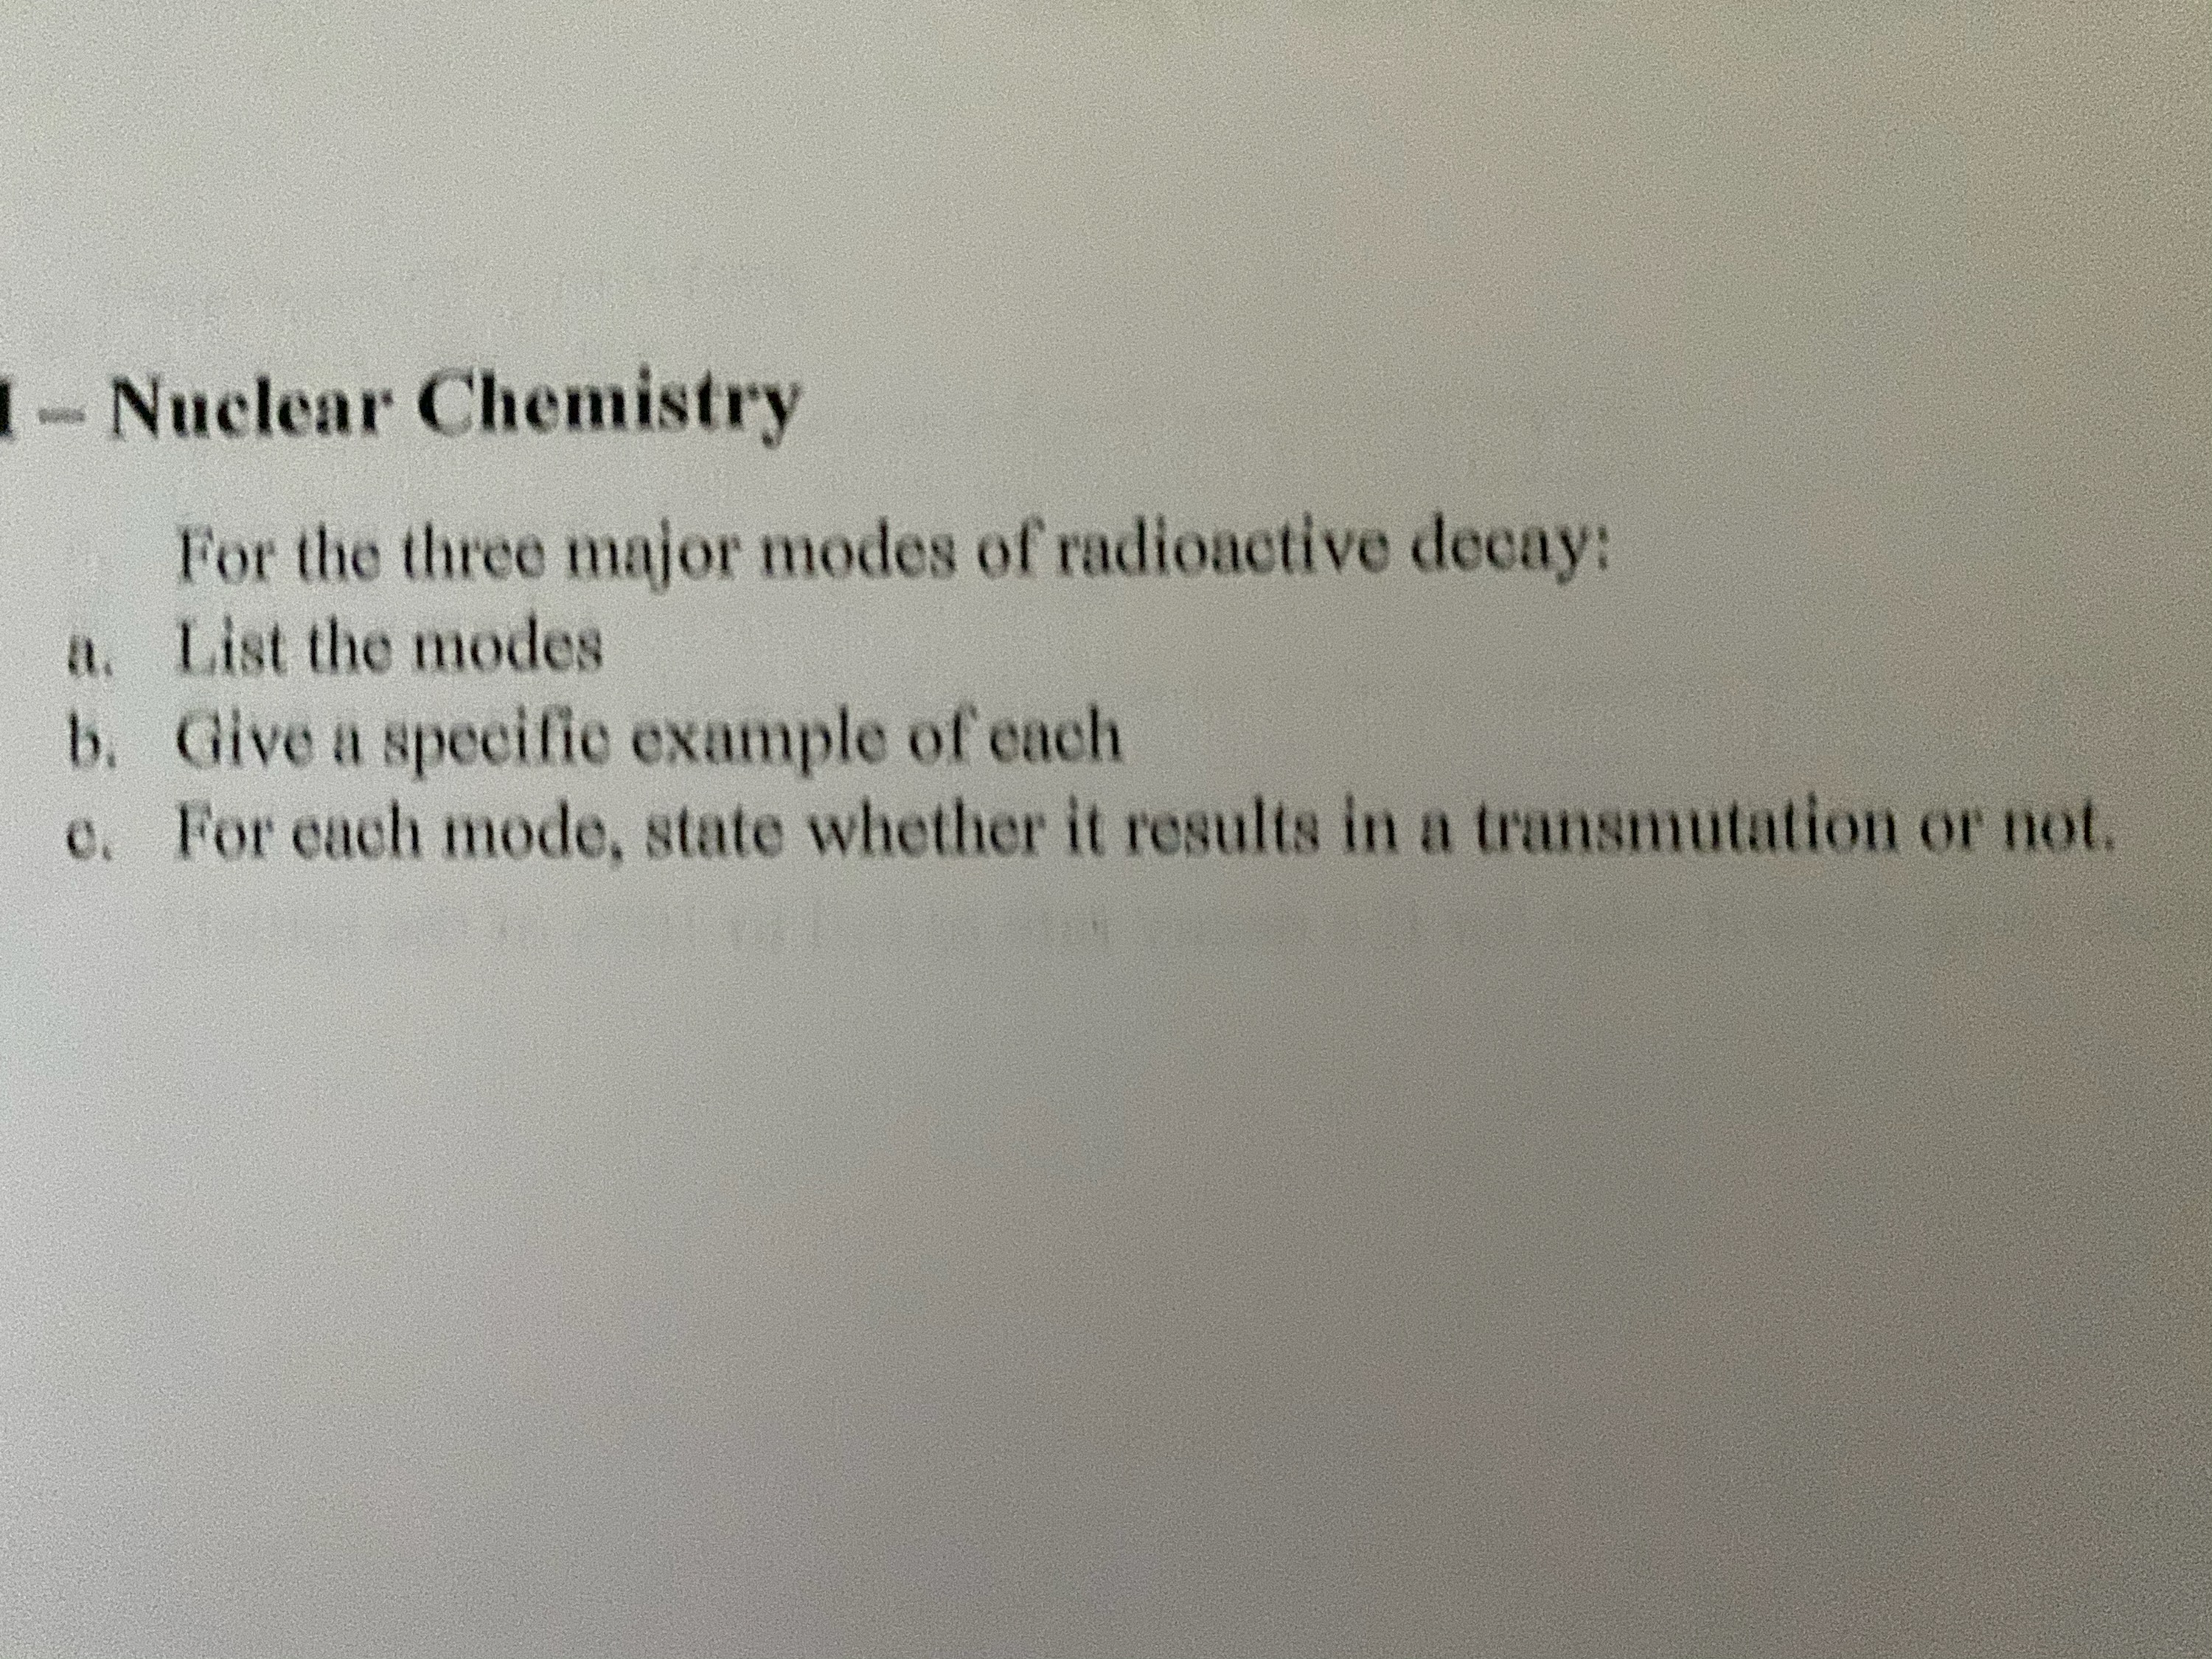 1- Nuclear Chemistry For the three major modes of radioactive decay: a. List the modes b. Give a specific example of each e. For each mode, state whether it results in a transmutation or not.